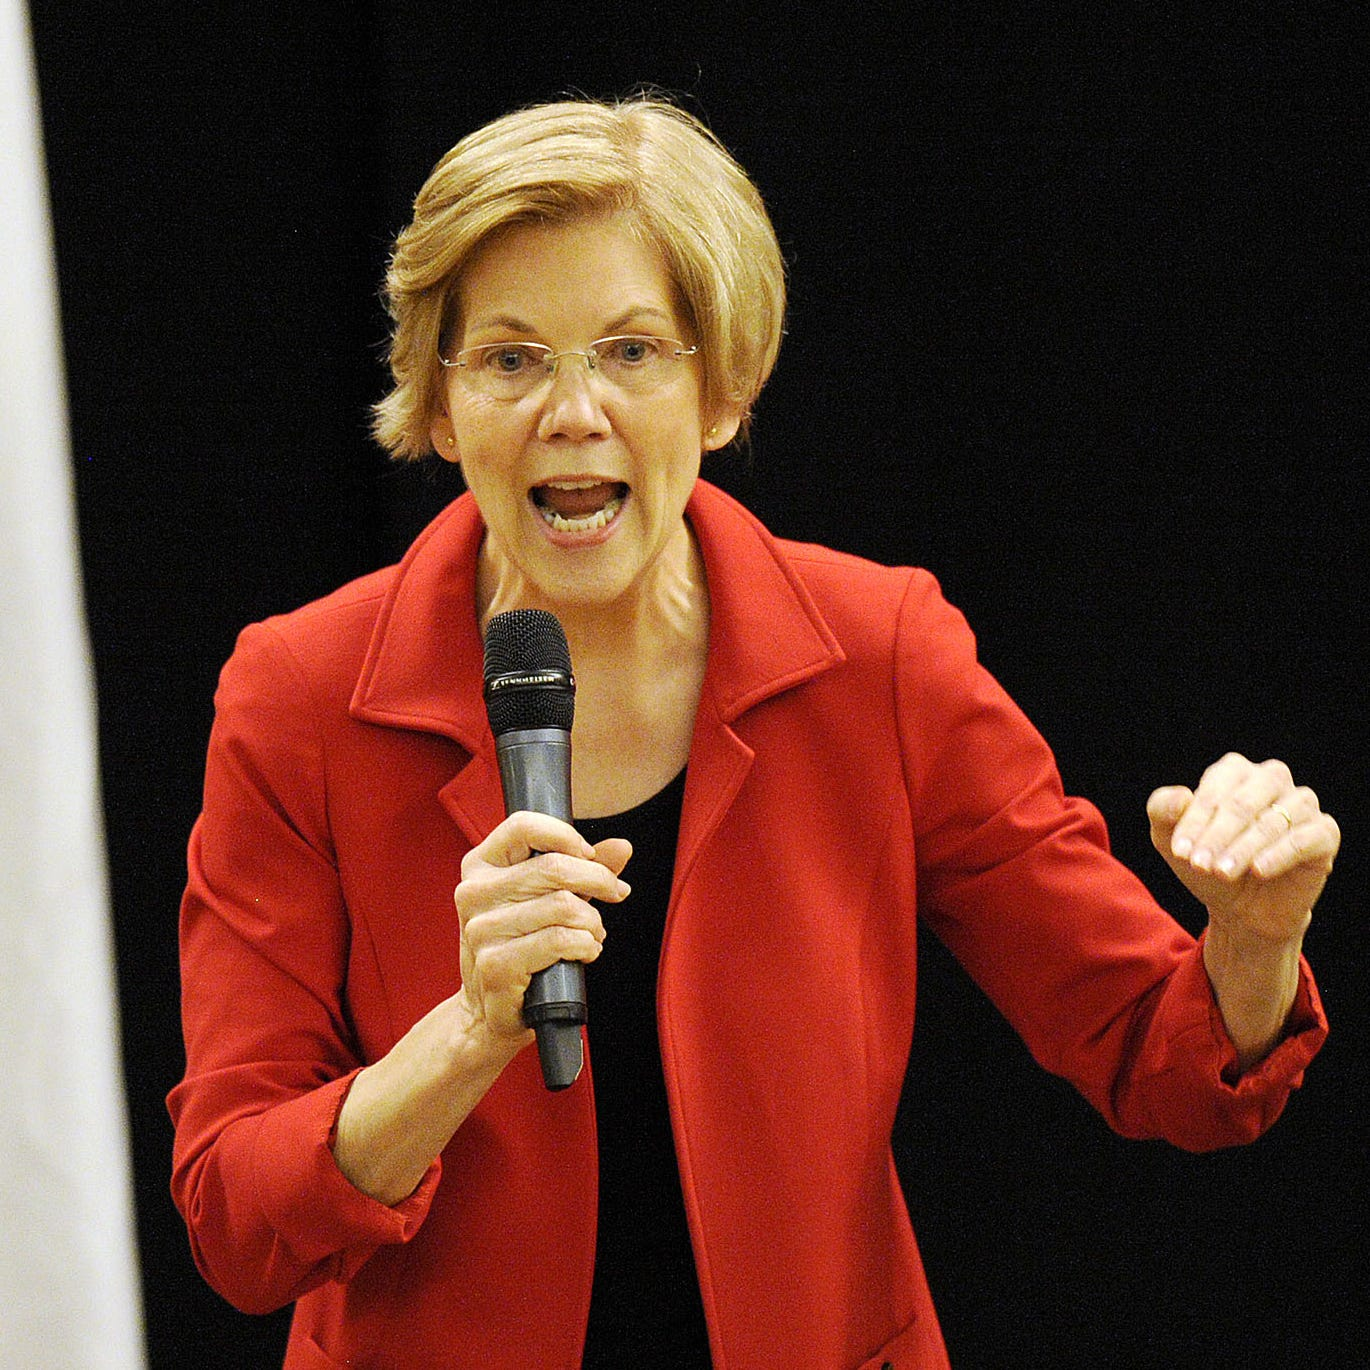 Sen. Elizabeth Warren, D-Mass., addresses a town hall meeting in Roxbury, Massachusetts, on Oct. 13, 2018.